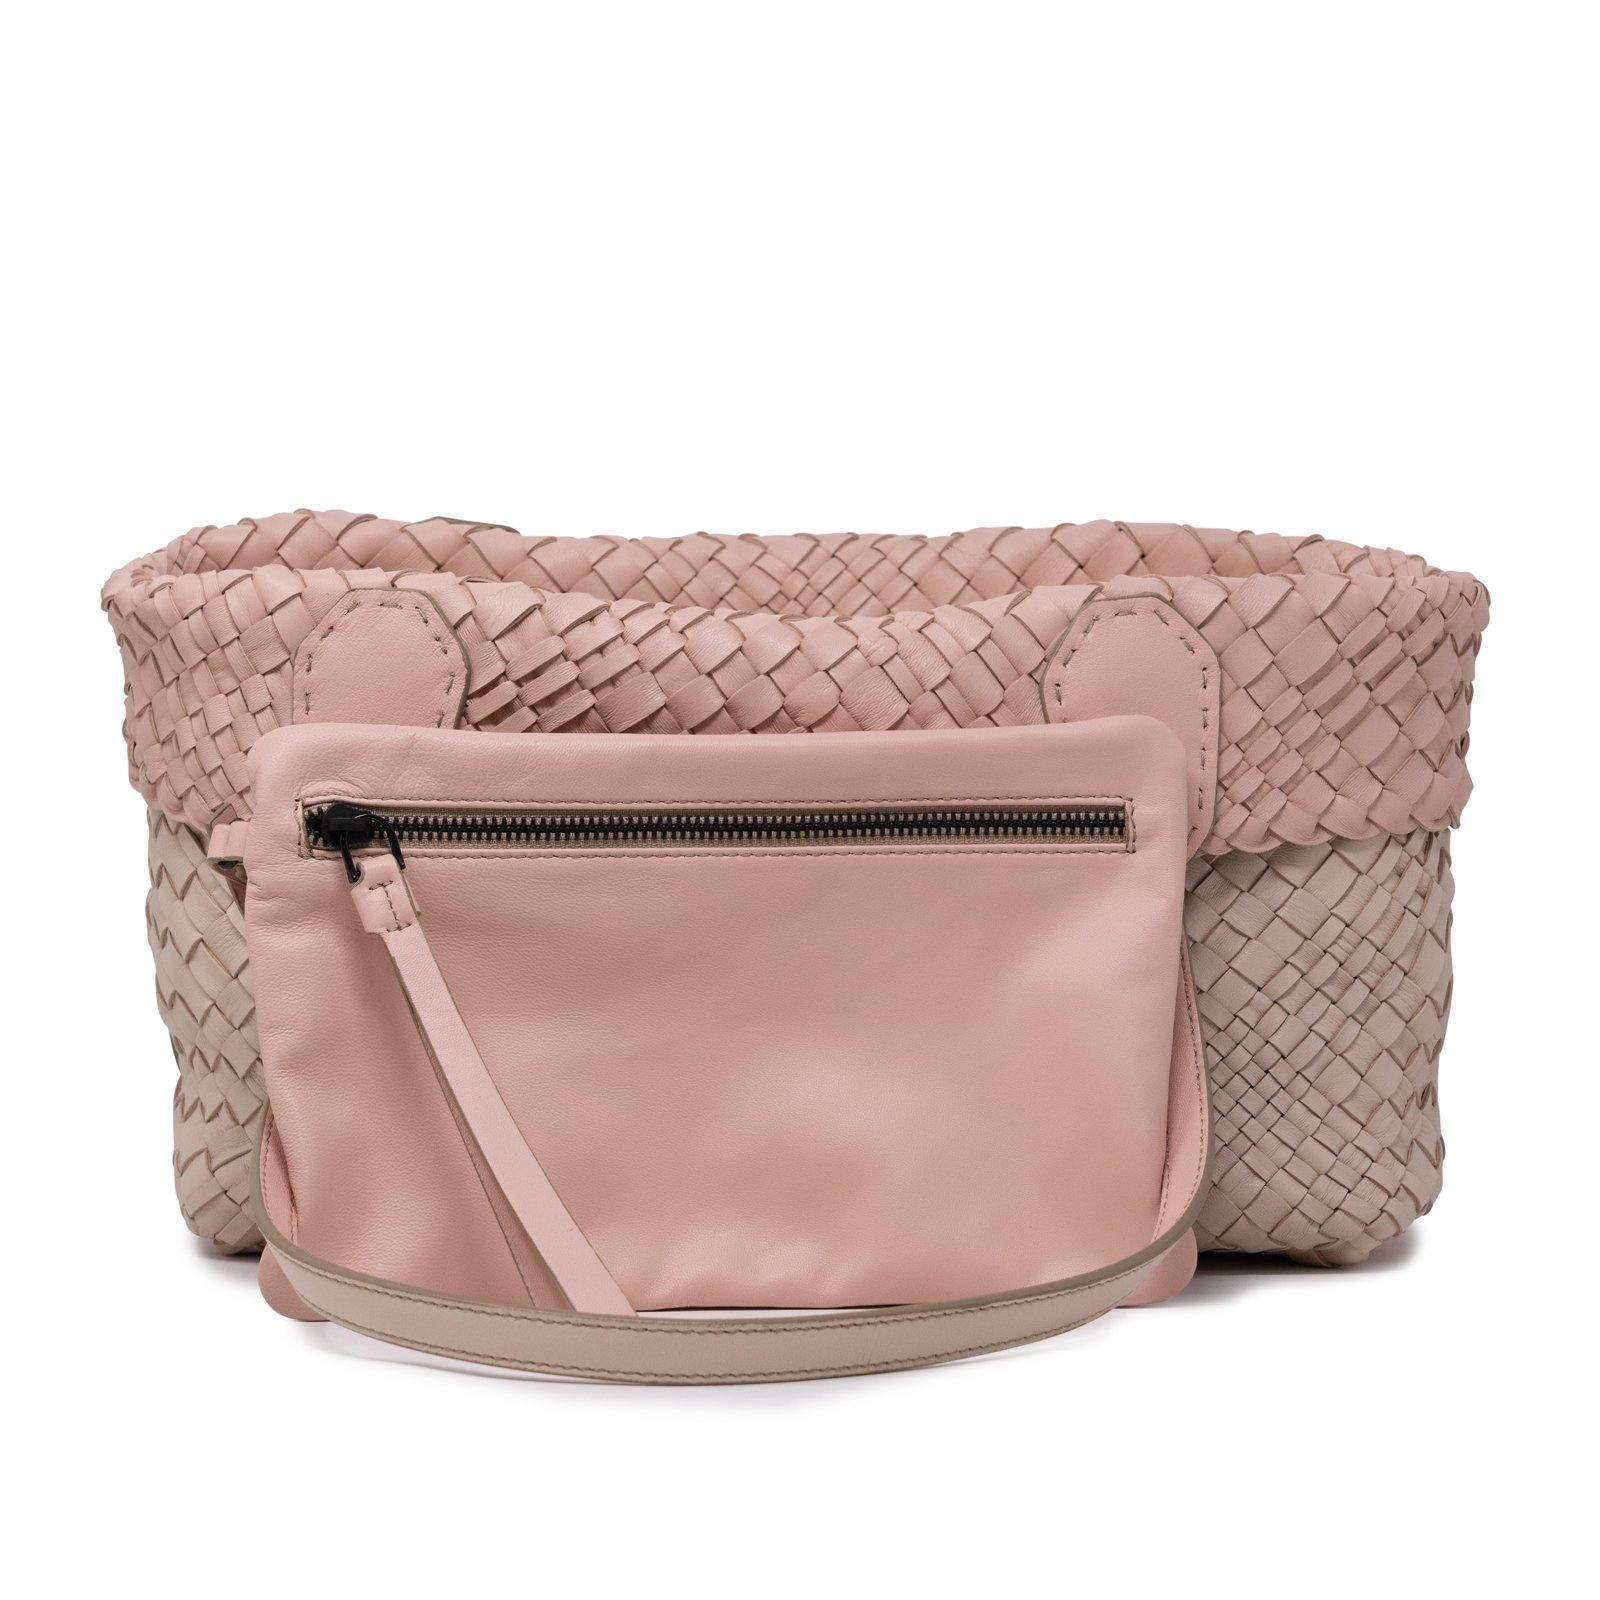 Women Leather Intreccio Optical Bag in Sabbia and Pink - Jennifer Tattanelli